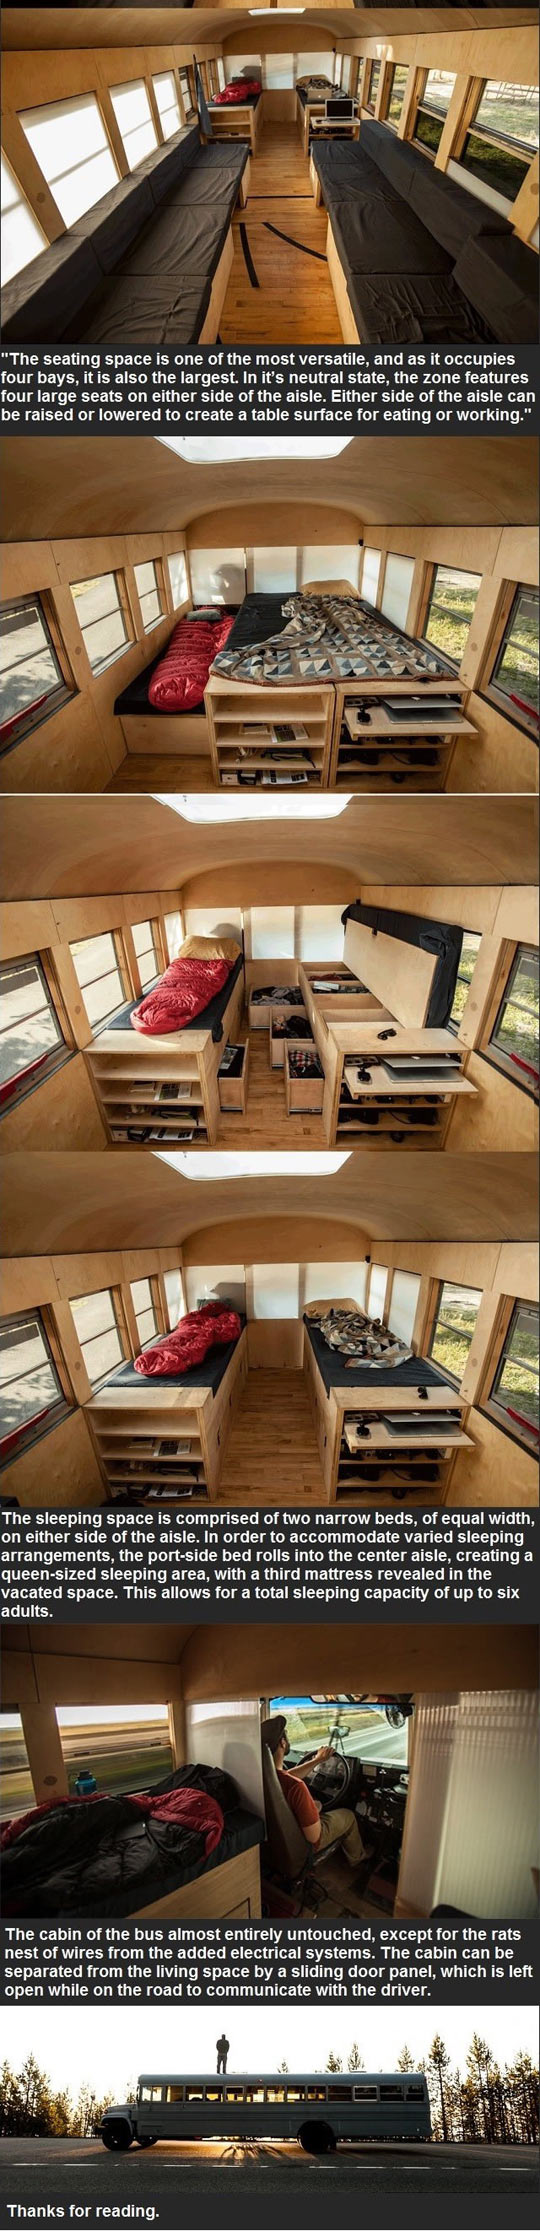 funny-bus-cabin-bed-wood-aisle